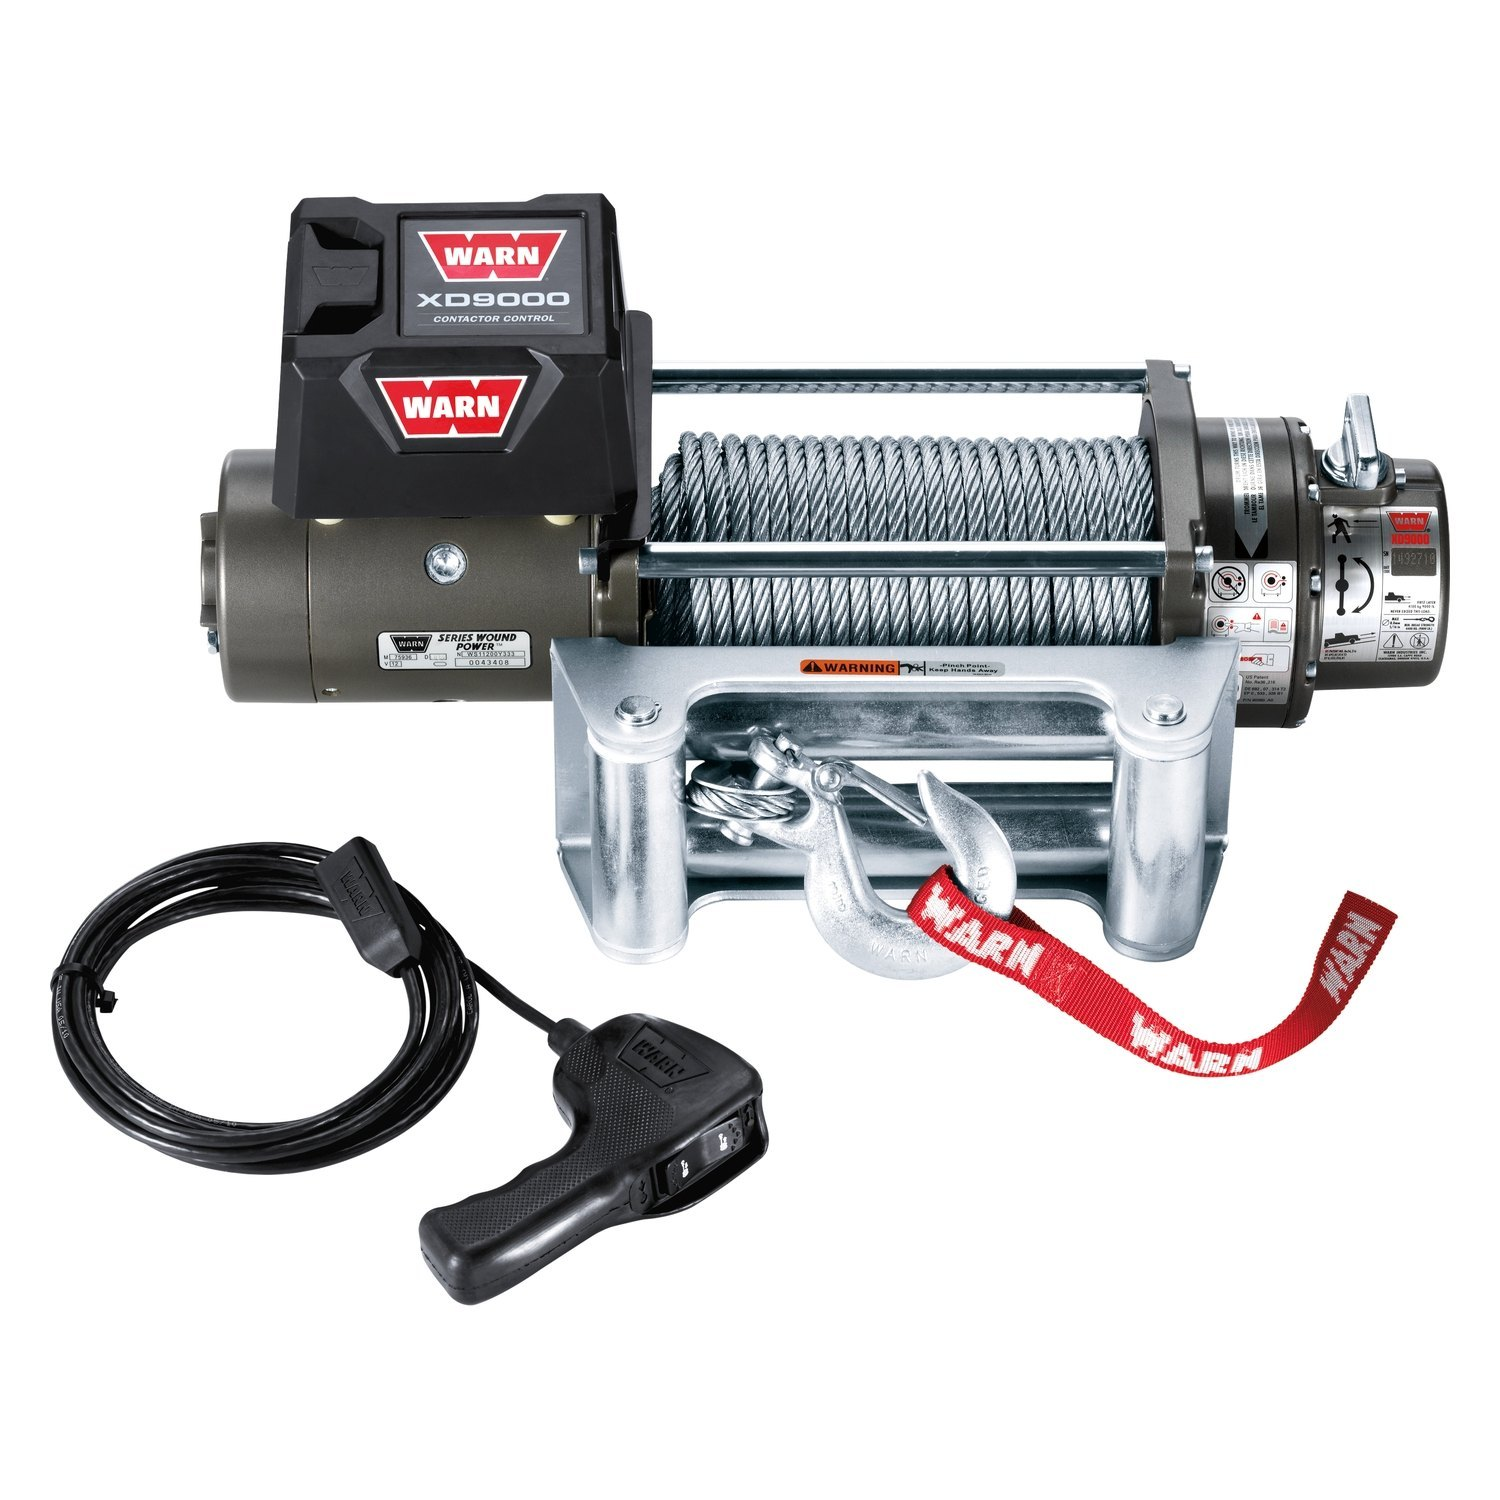 hight resolution of warn winch with wire rope